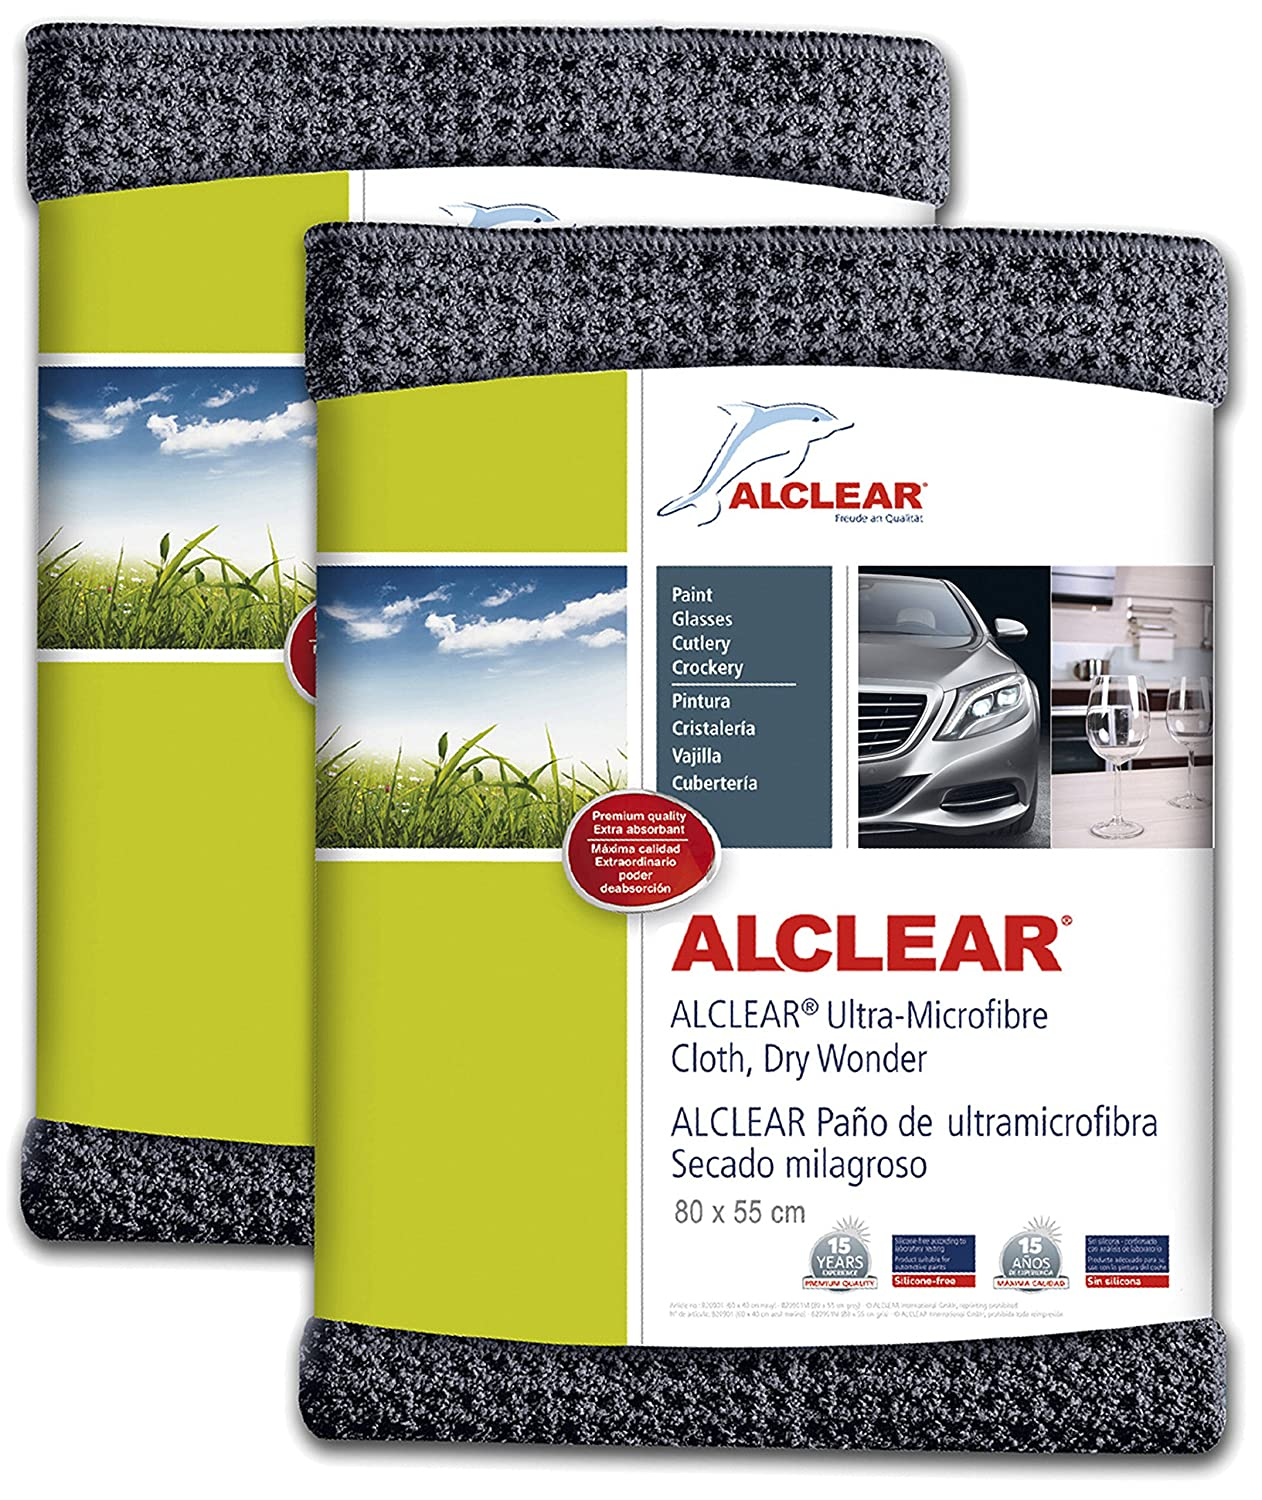 Amazon.com: ALCLEAR 820901M Ultra-microfiber Cloth Dry Wonder Maxi after car wash. Grey. Size: 31.50 x 21.65 in. Double Set.: Automotive